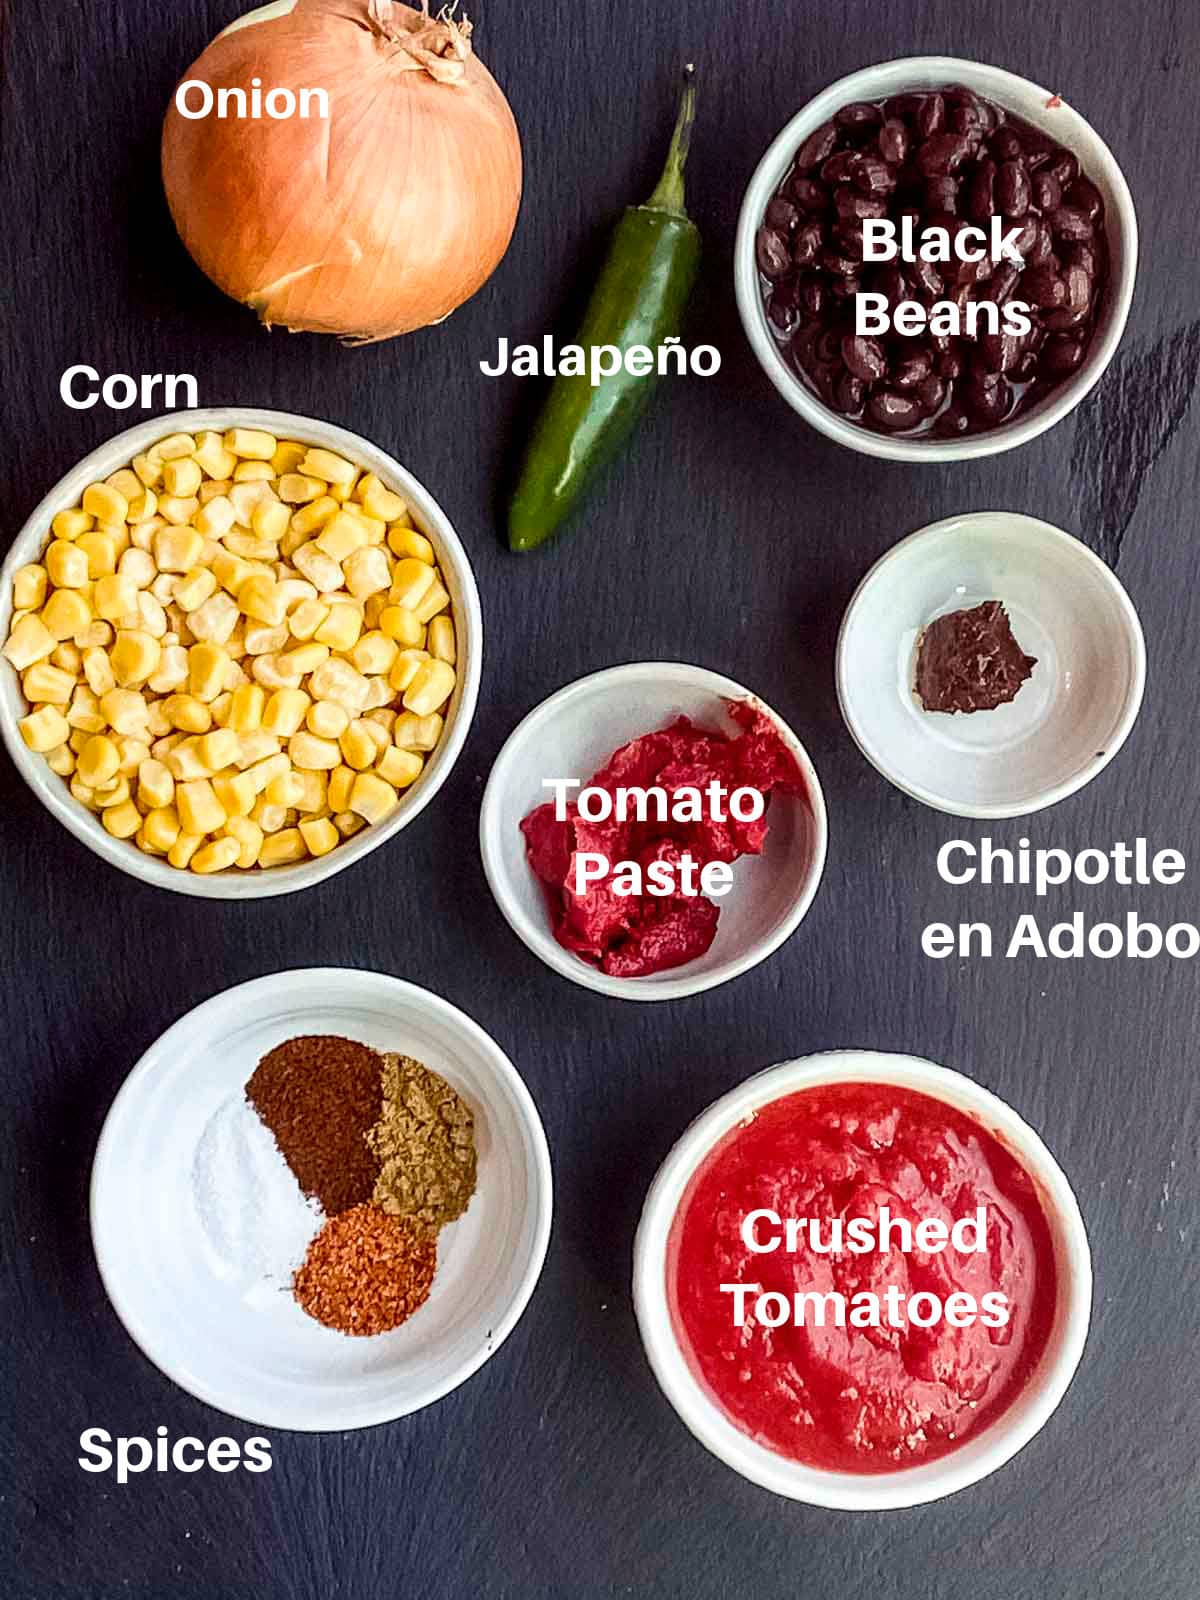 Overhead view of the labeled ingredients to make tortilla soup